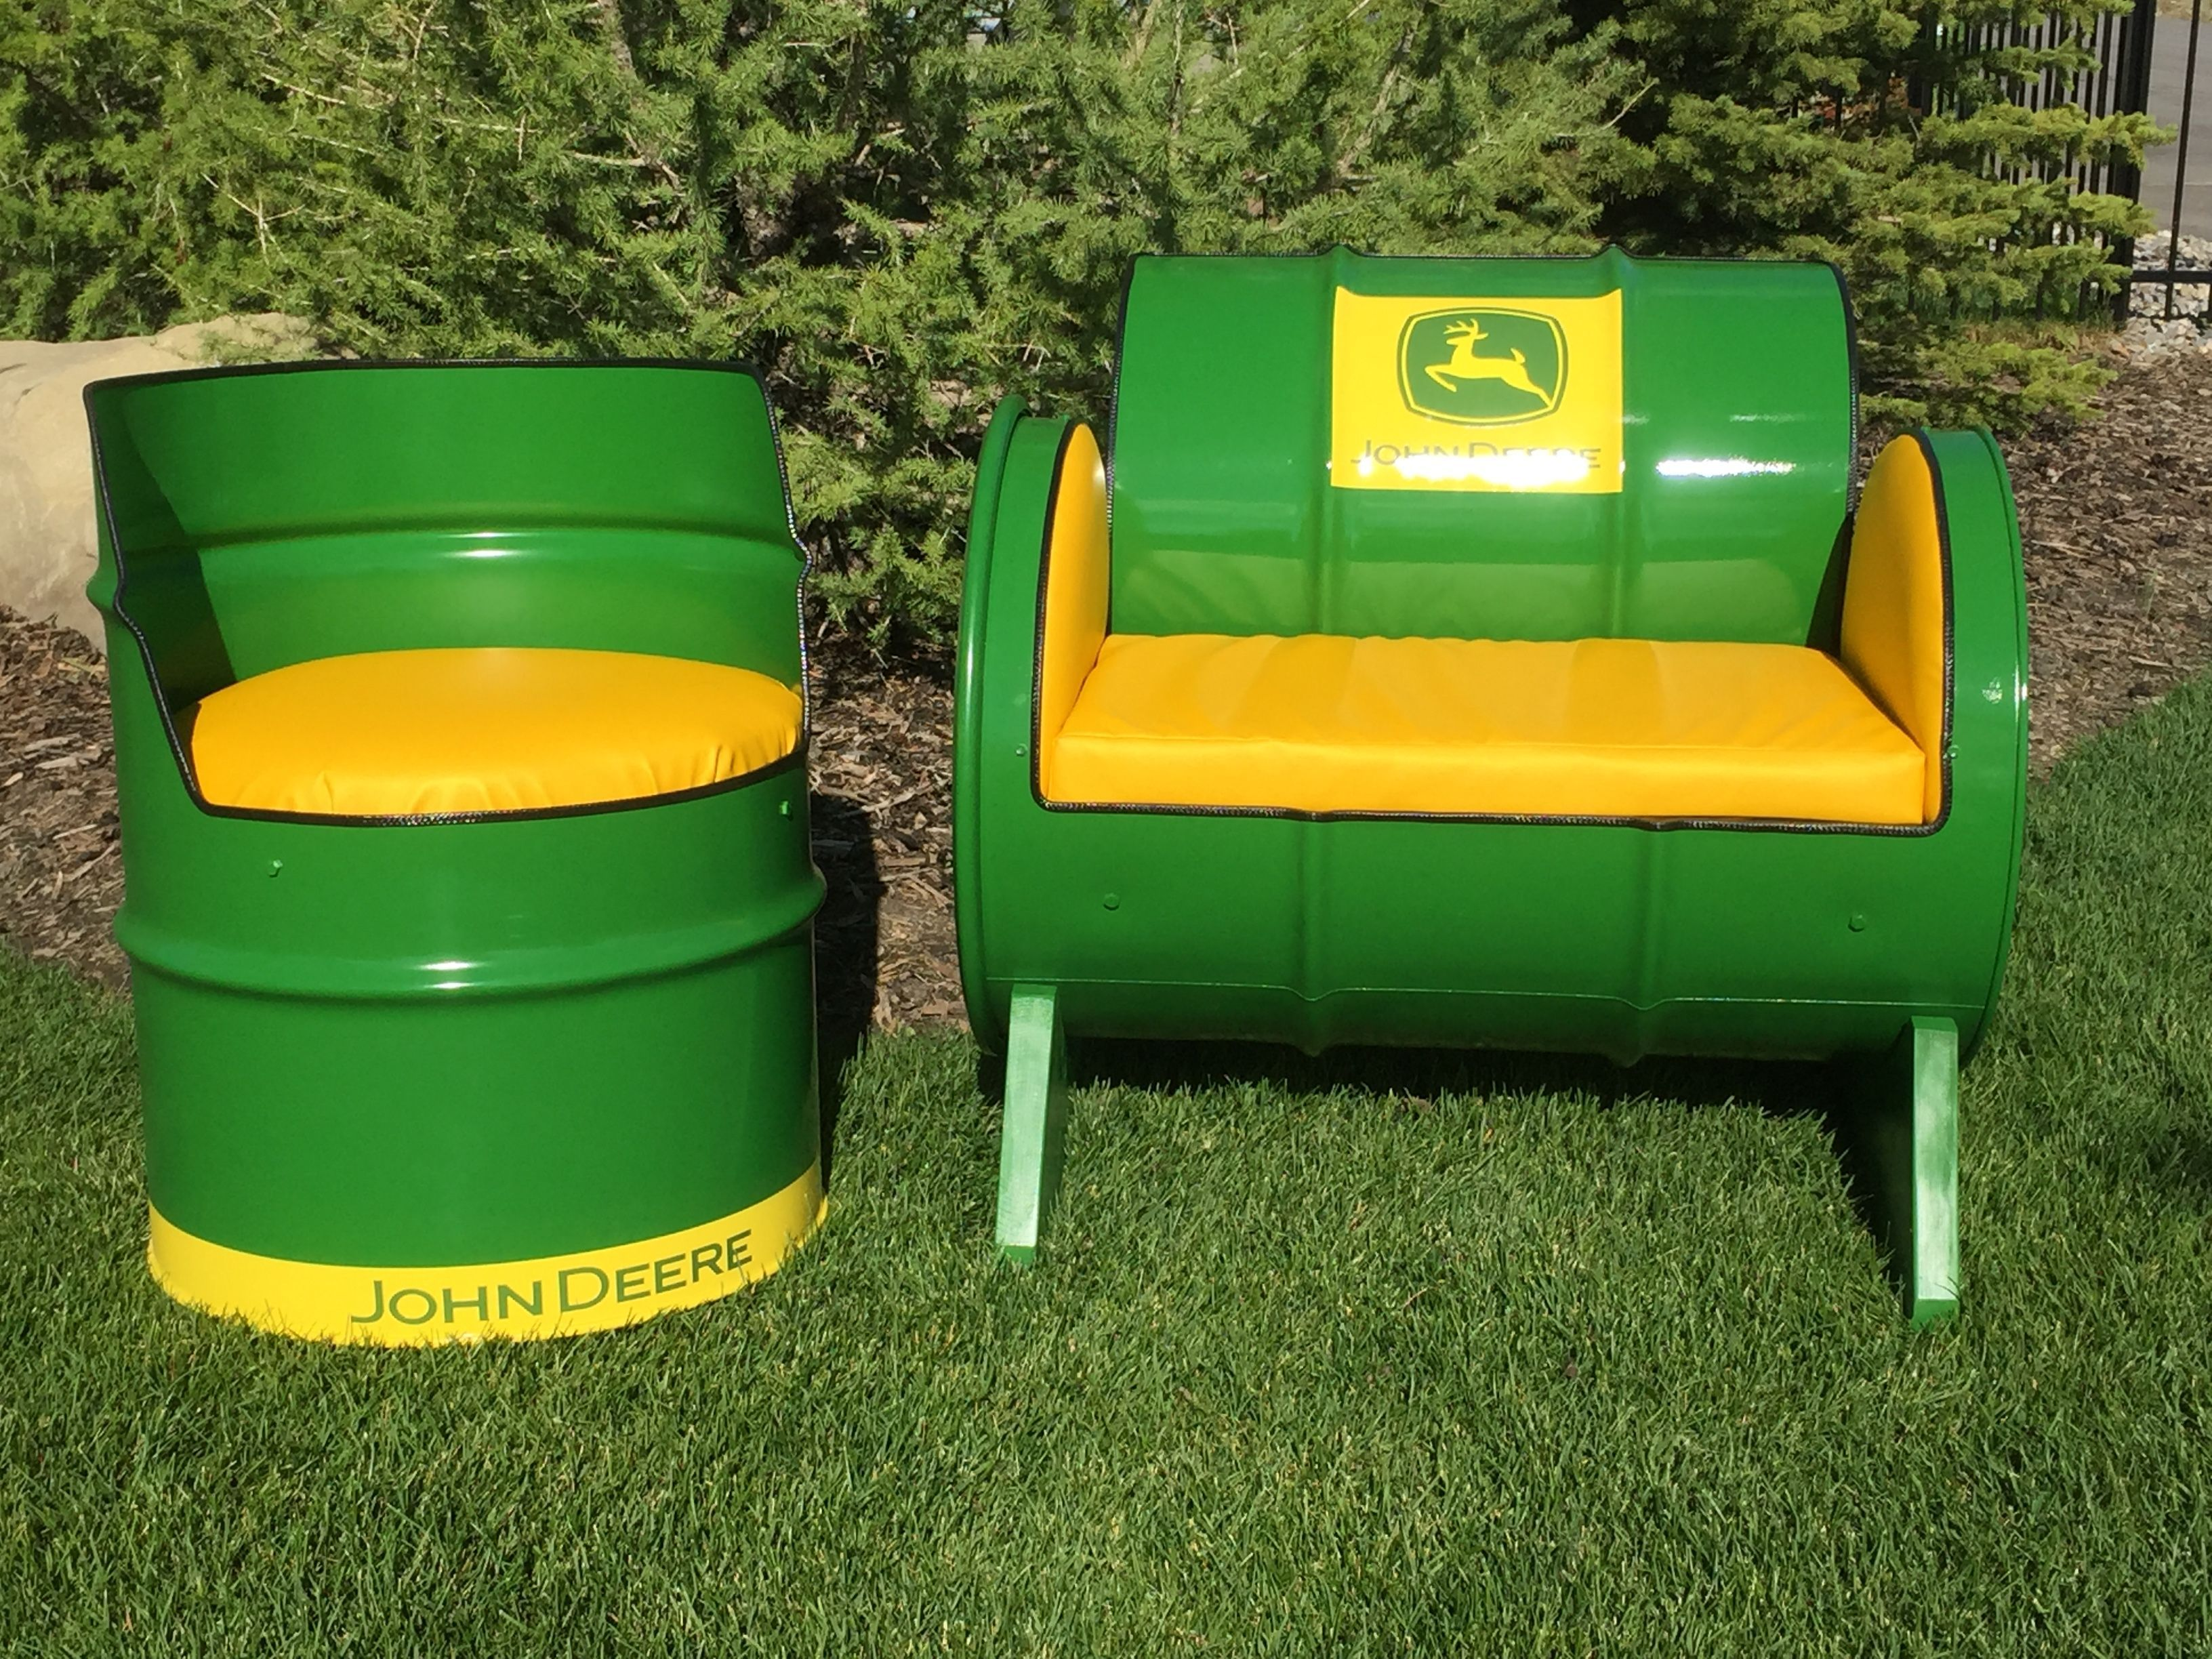 Steel Barrel Furniture I Just Finished Them Today They Are